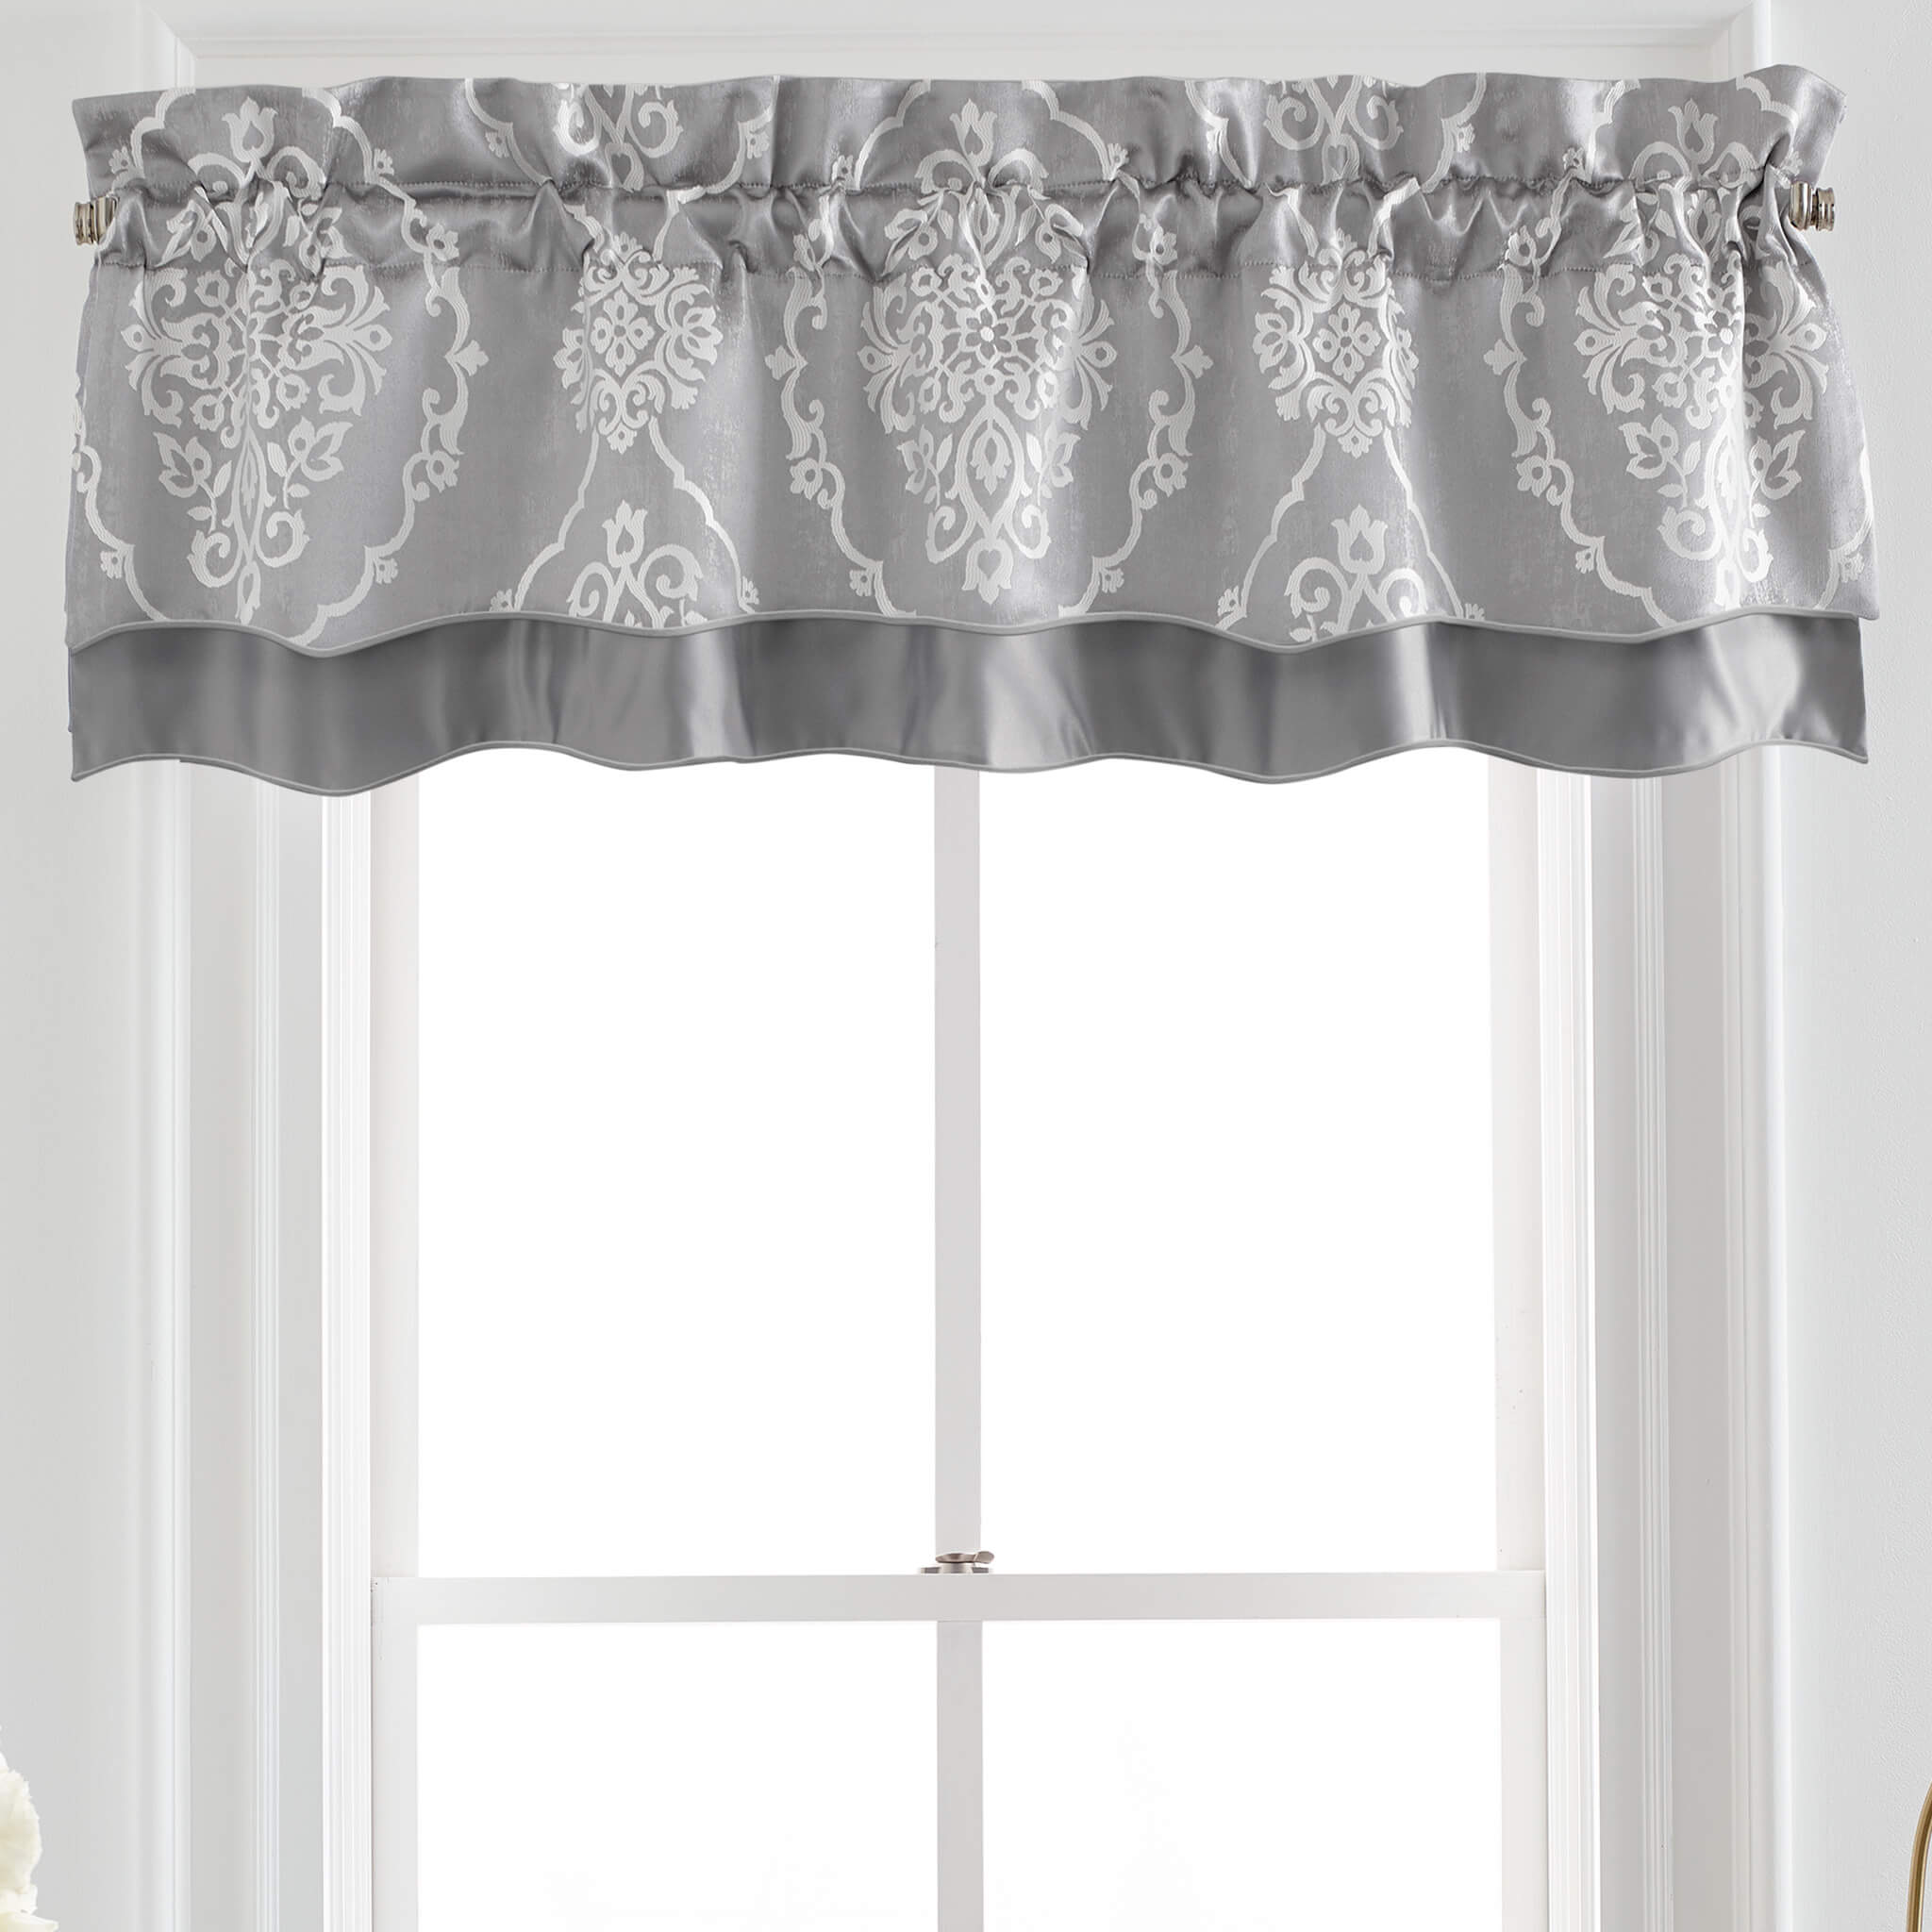 Isla Grey Scallpped Window Valance By Croscill [Luxury comforter Sets] [by Latest Bedding]